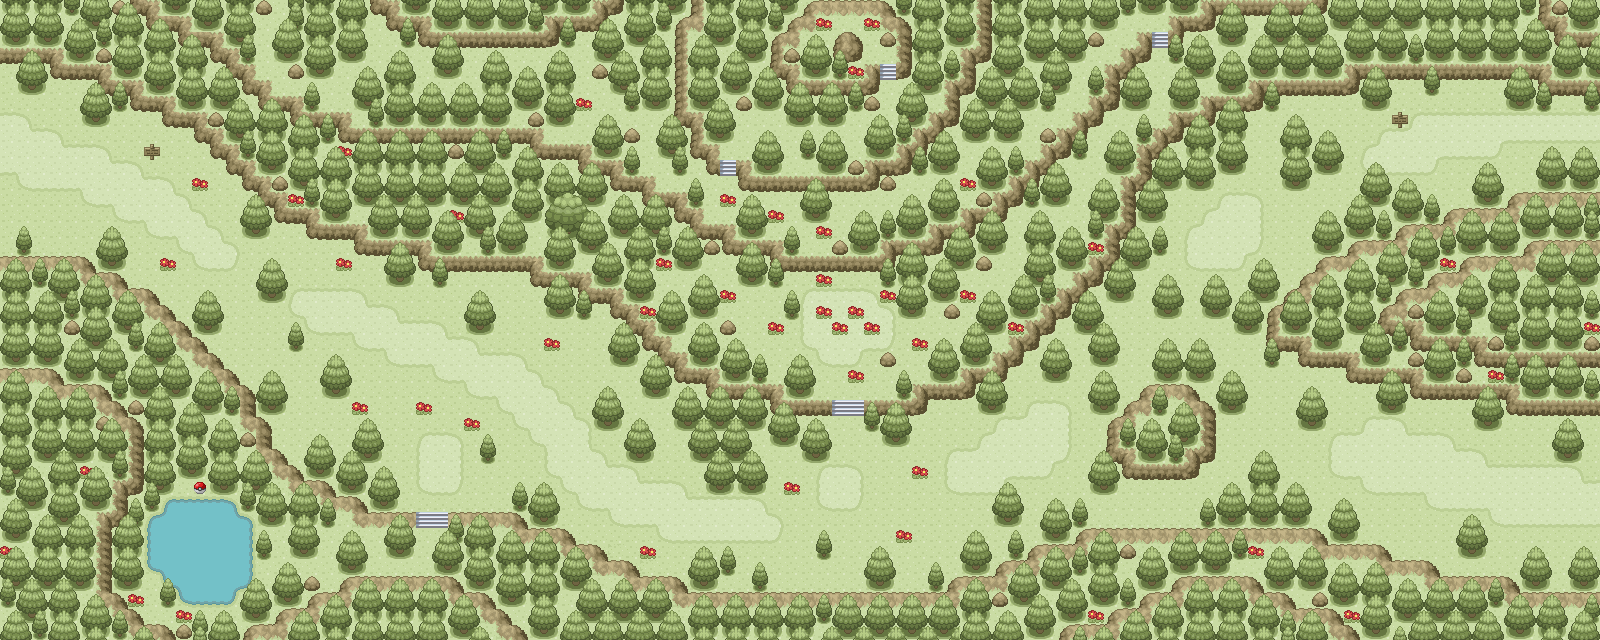 Pokémon-Map: Route 231